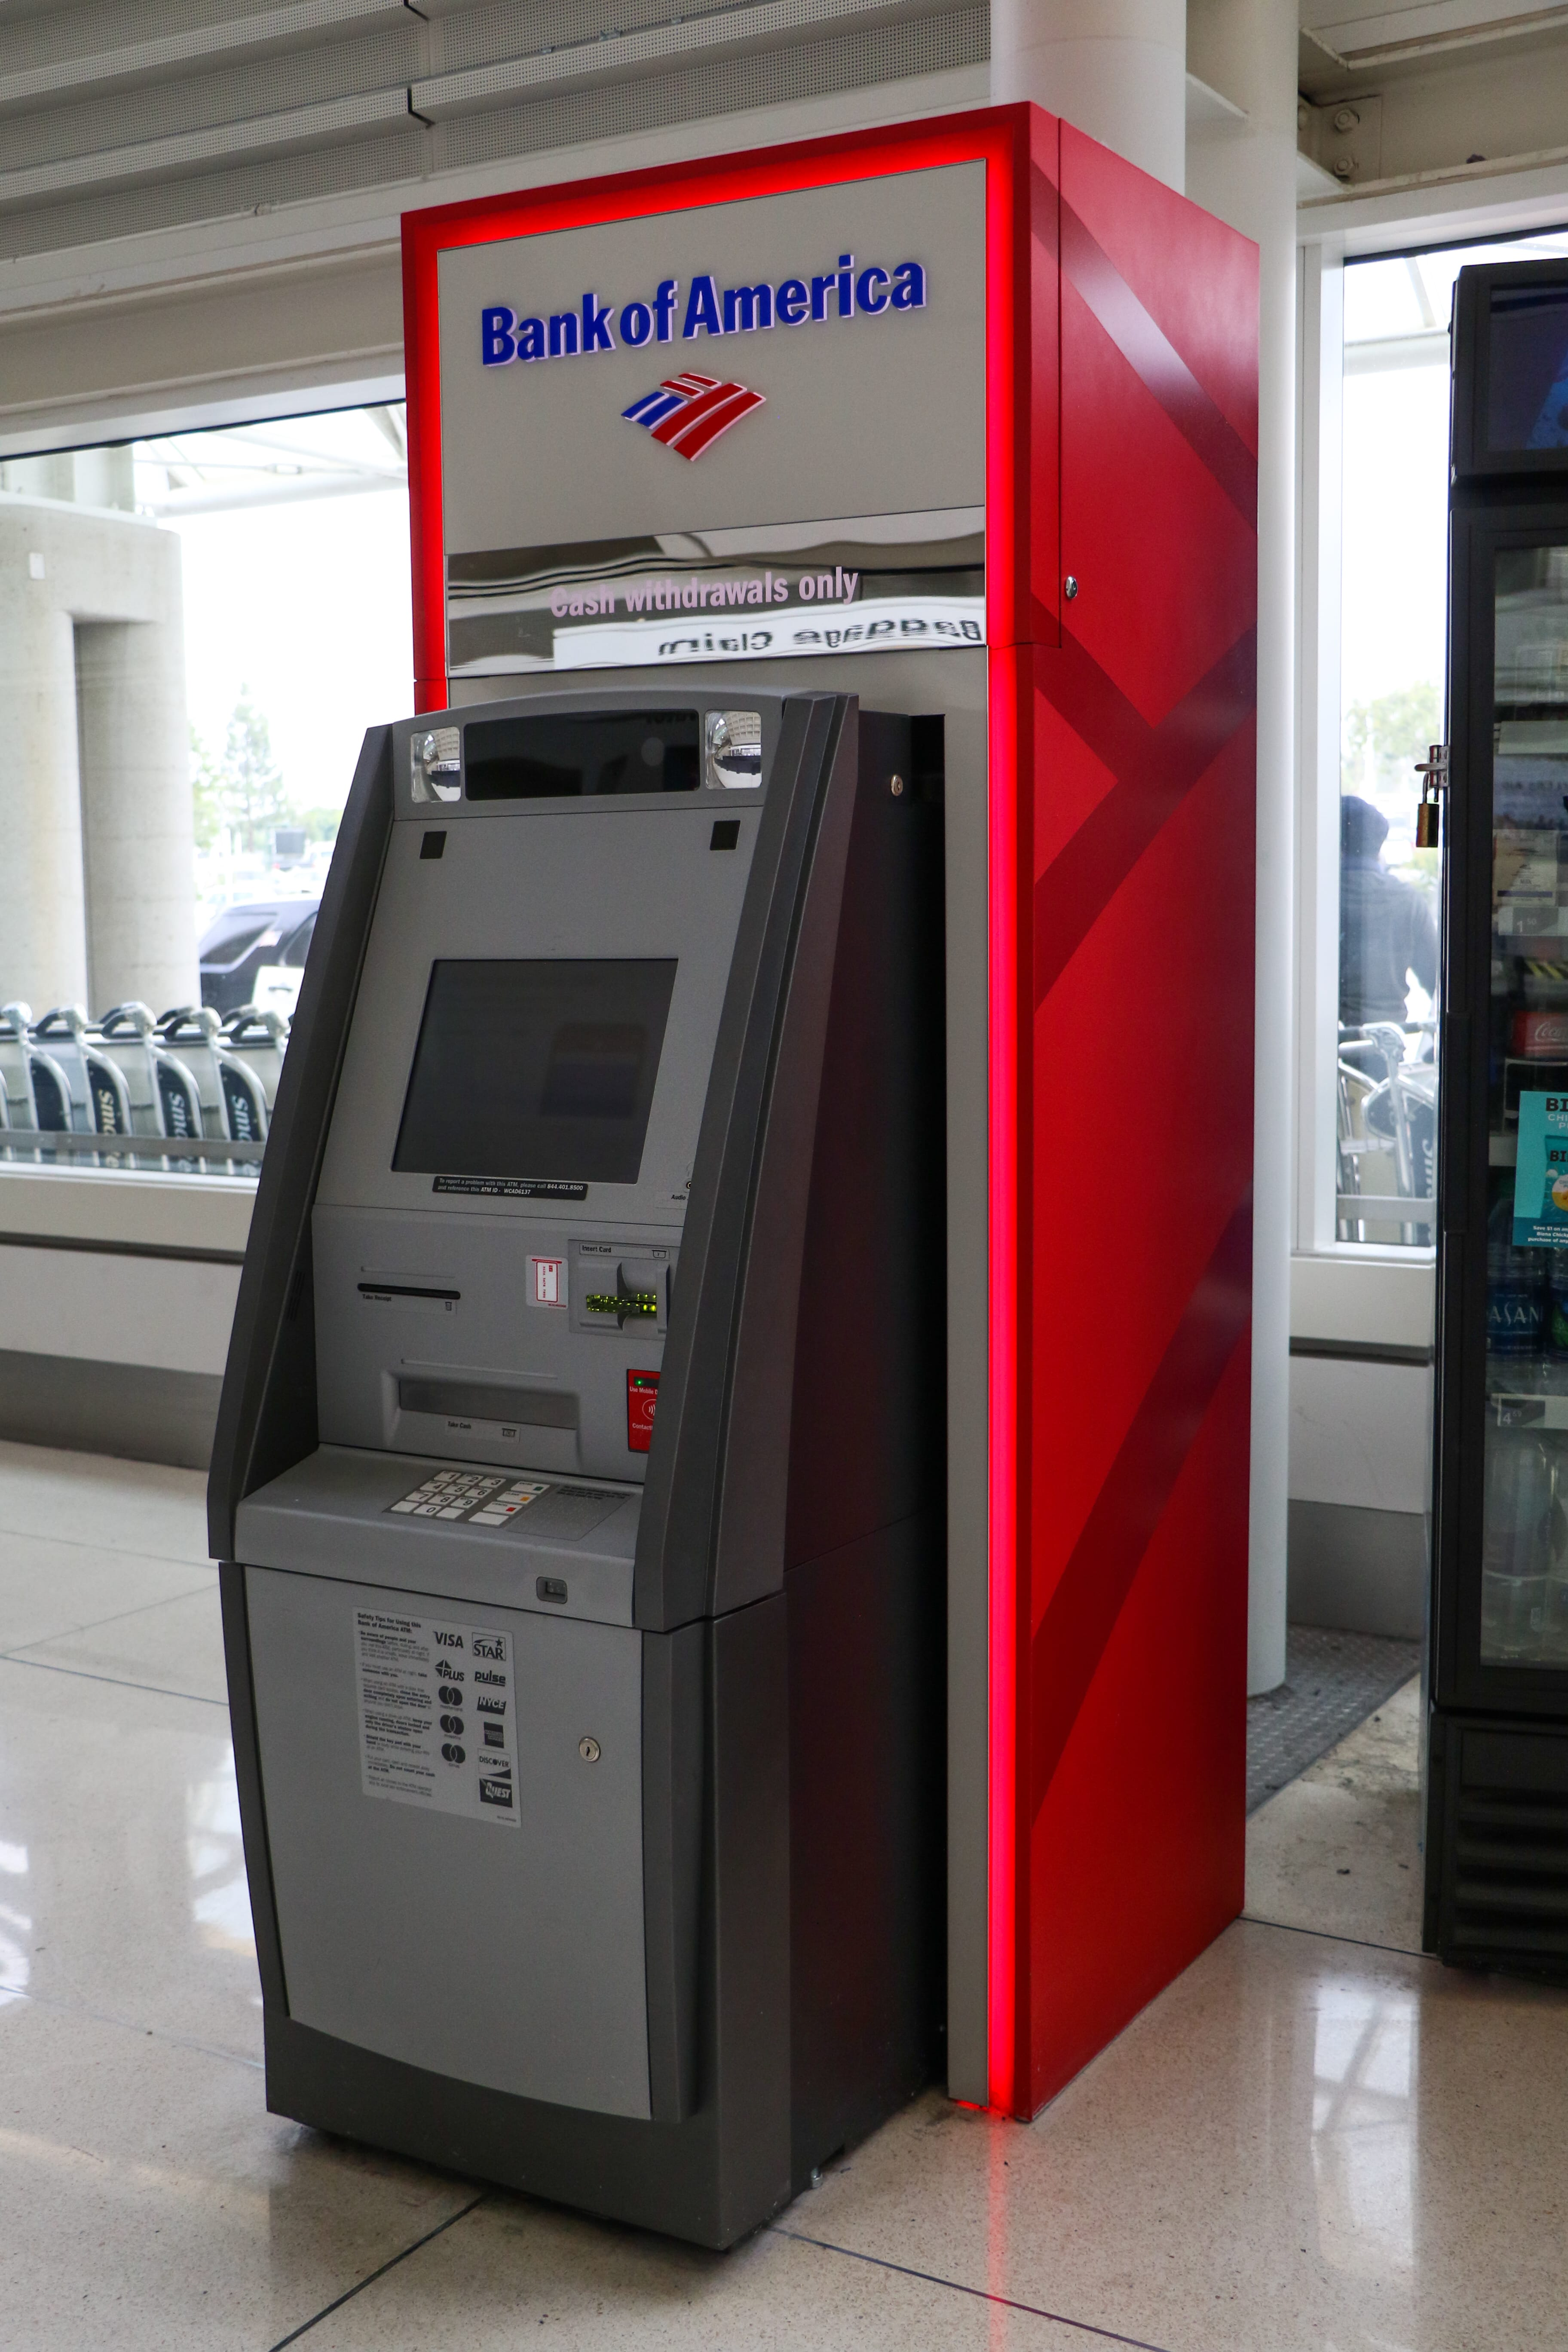 bank of america atm at the airport